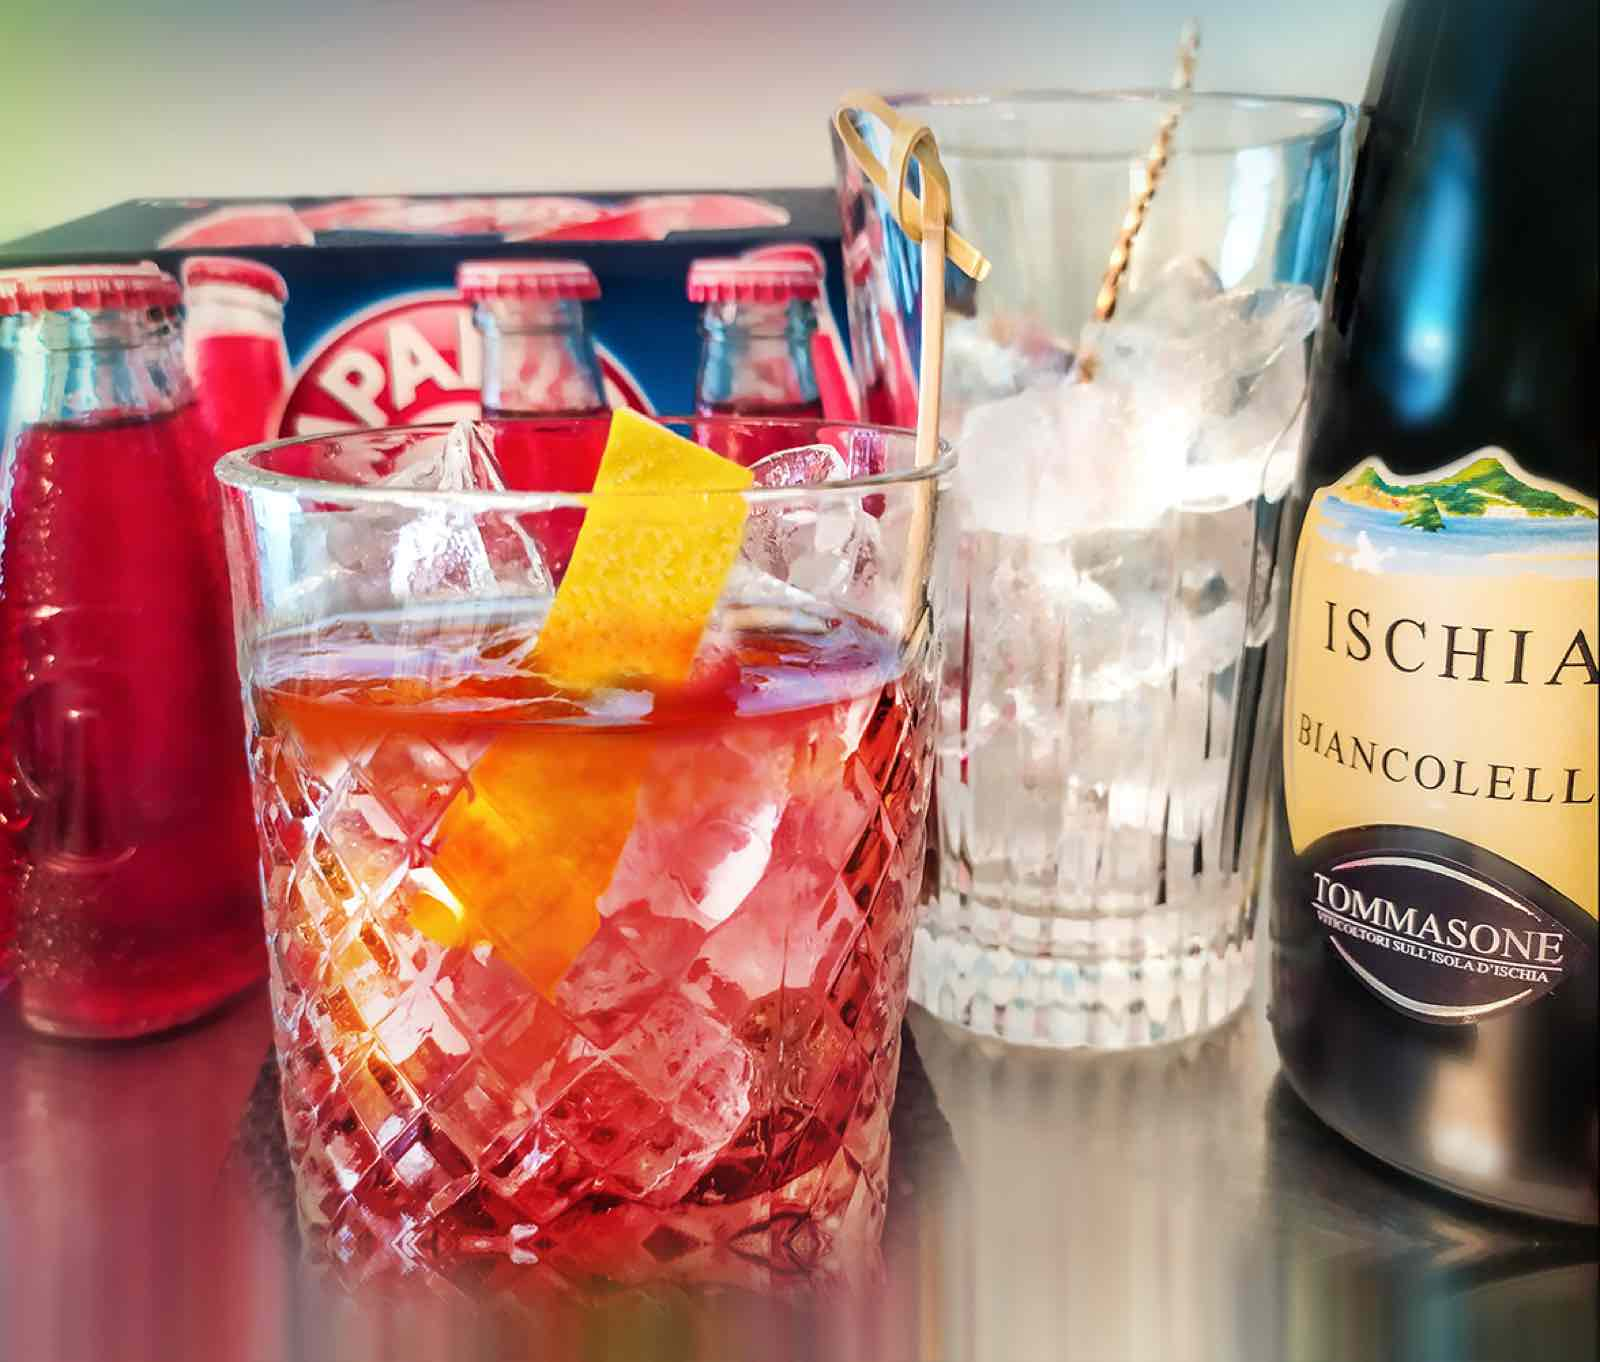 Ready, steady, stir the Iskian Negroni; Mix Biancolella white wine and soda, add tonic water and garnish with lemon.